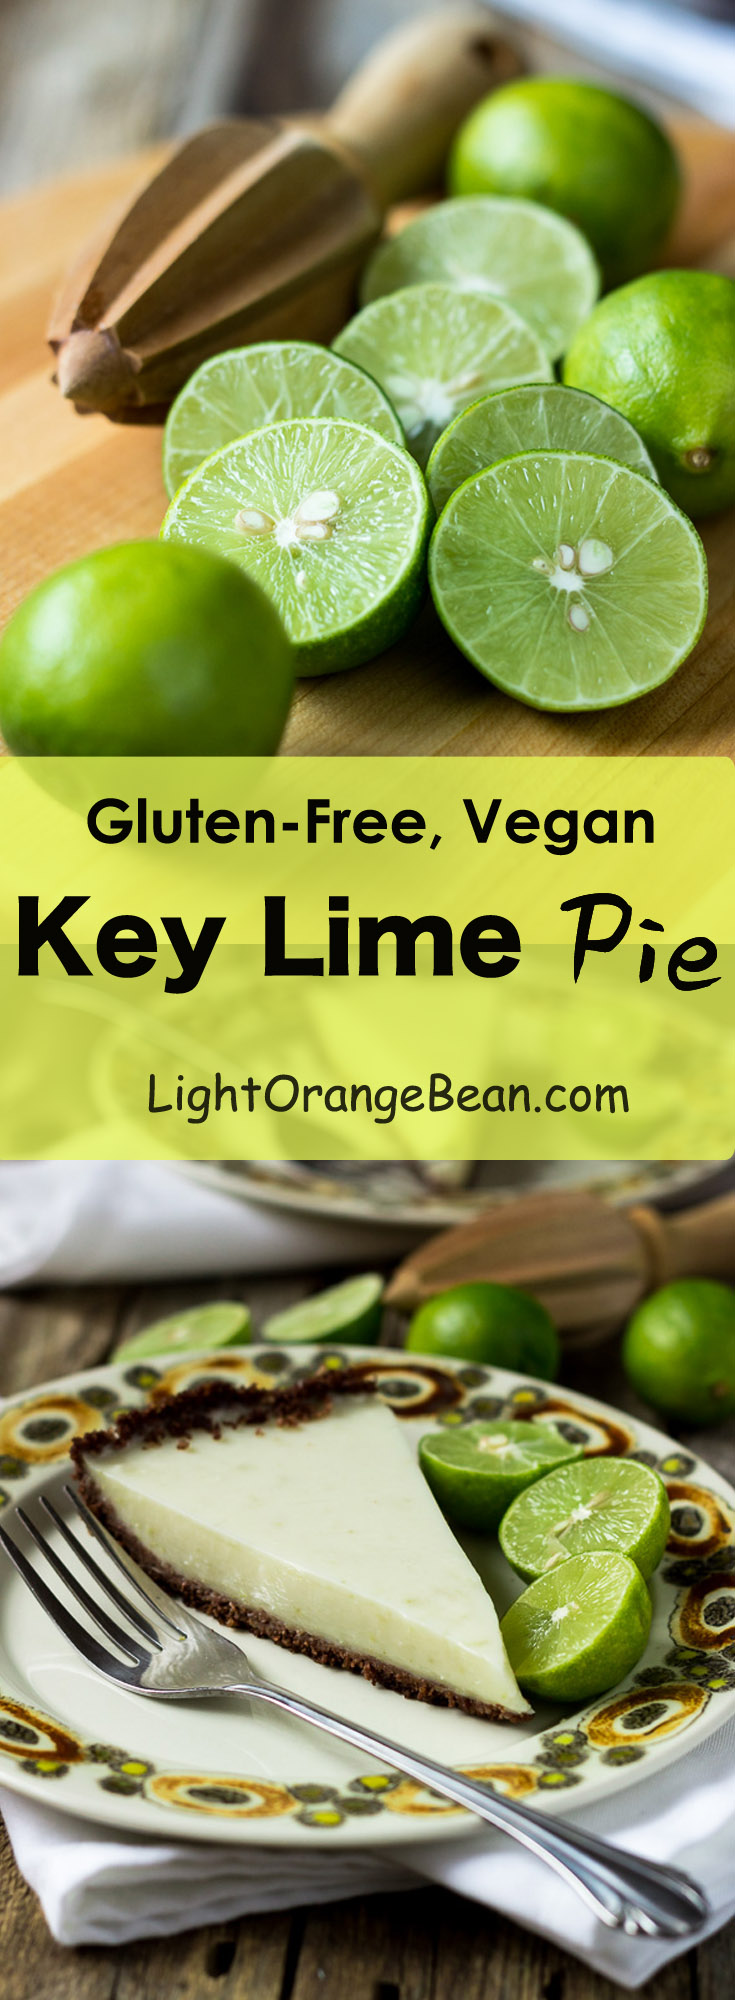 This authentic real key lime pie is a combination of freshness, sweetness, unique tartness, and silky smooth texture.  (#Glutenfree #Vegan #lowcalories #sugarfree #vegandessert #glutenfreepie #simplepiecrust #dairyfree)